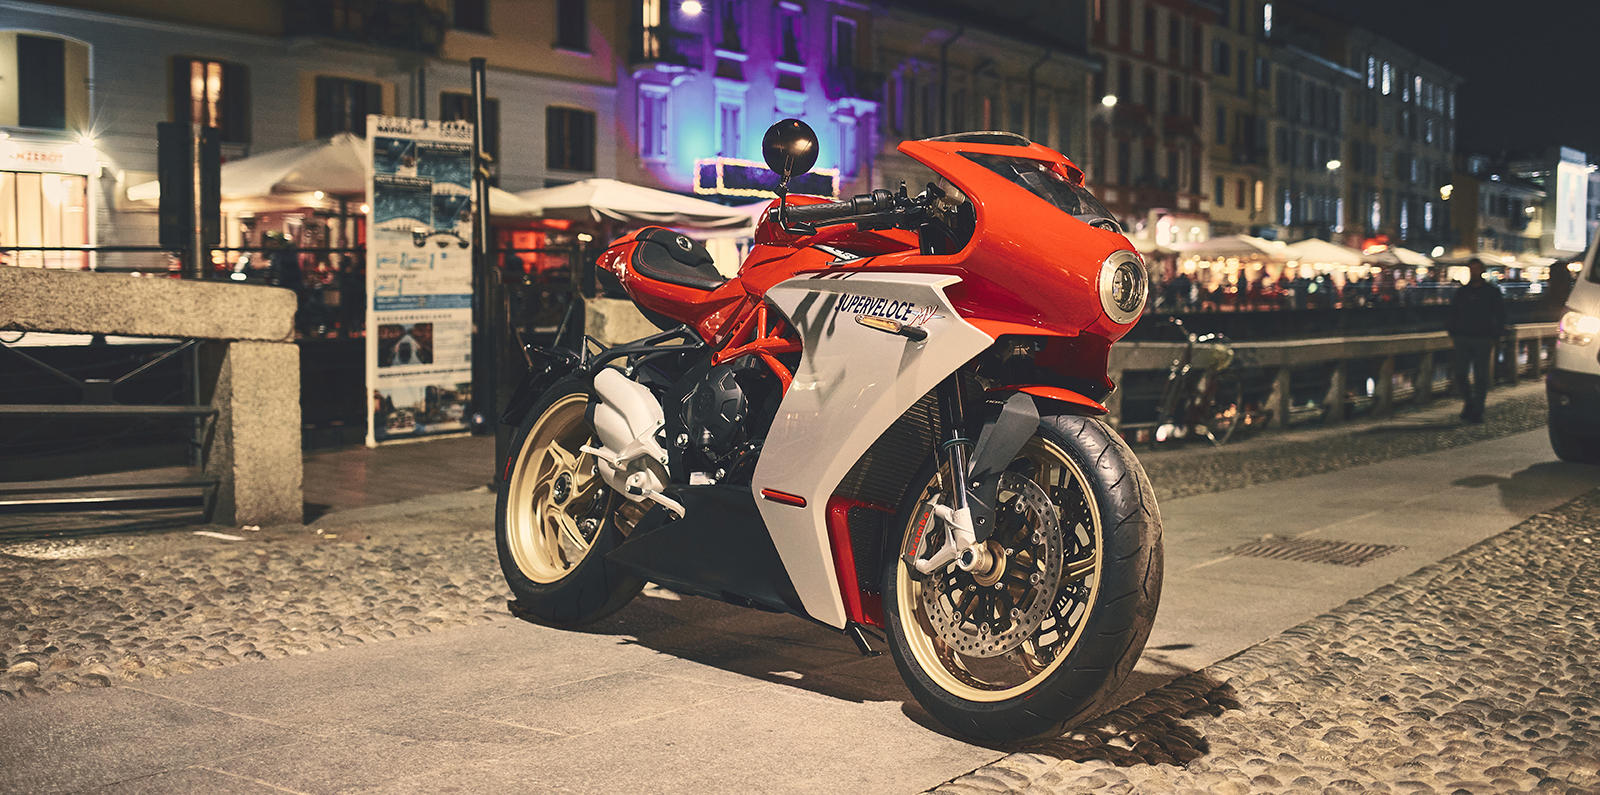 mv agusta super veloce 800 motorcycle parked in the streets of venice